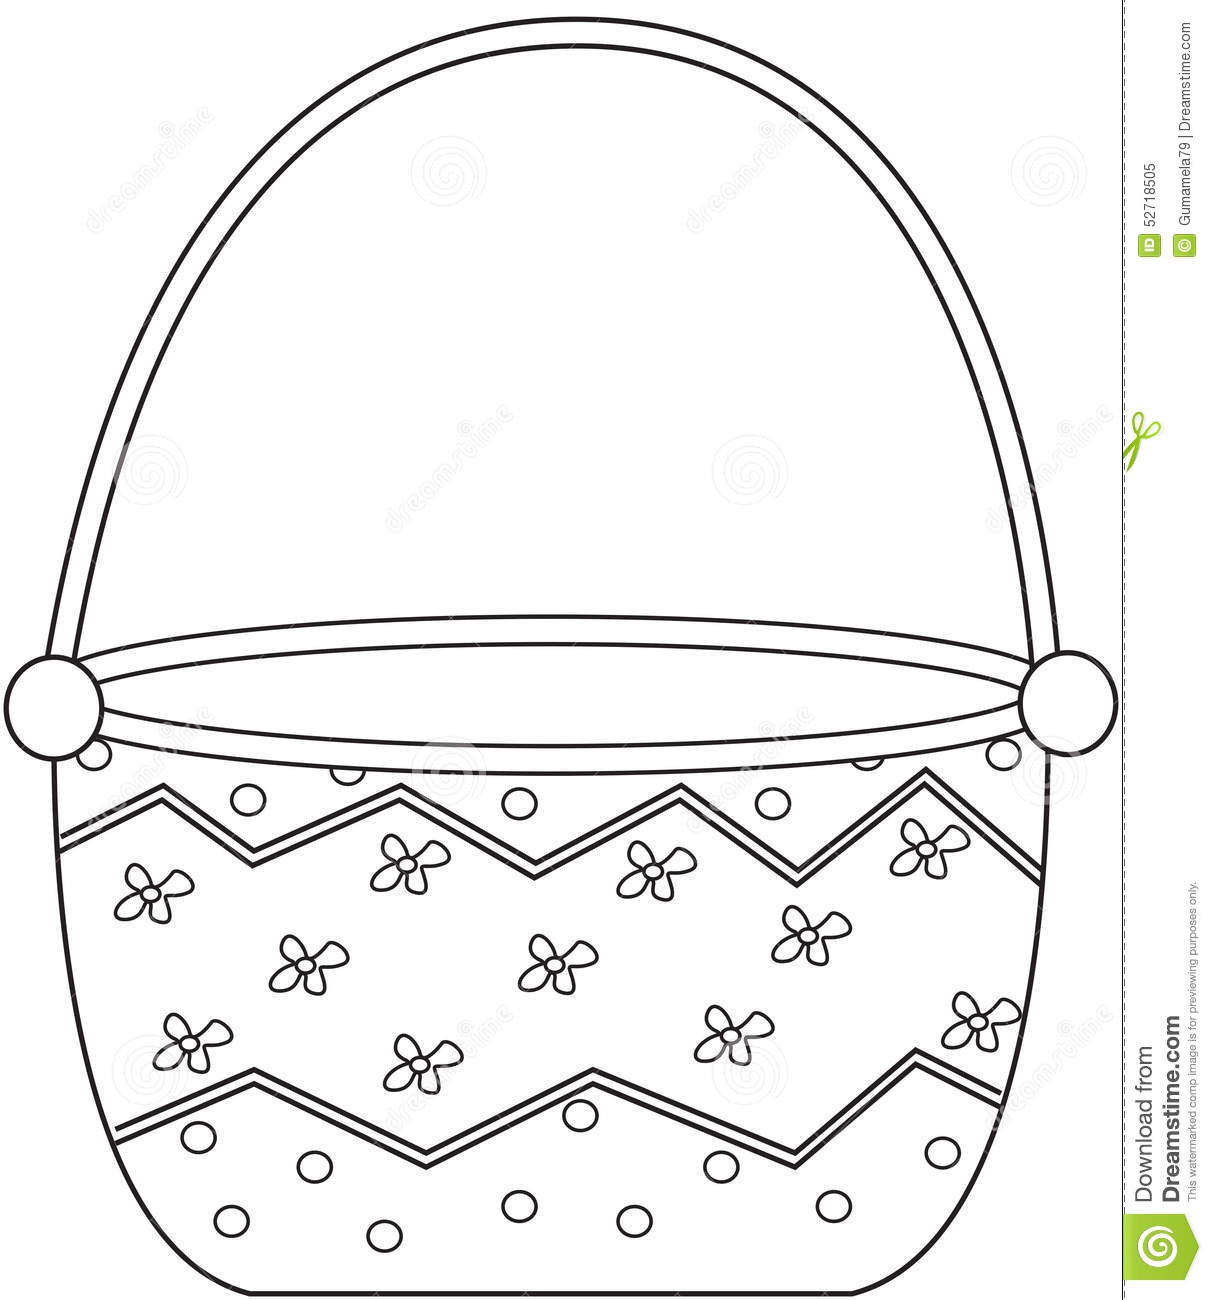 Basket Coloring Pages  Basket Coloring Page Stock Illustration Image